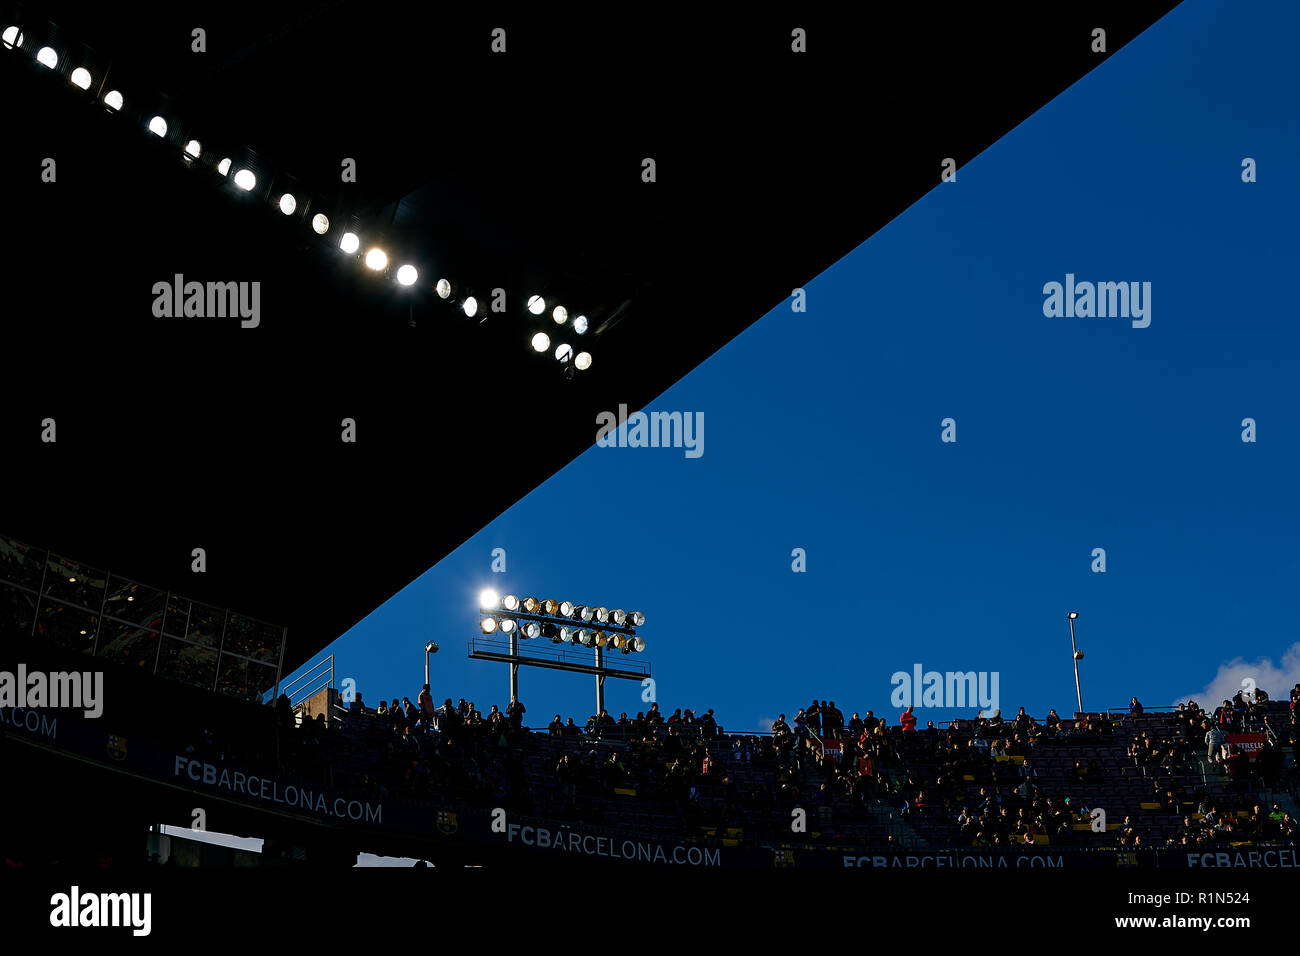 BARCELONA, SPAIN - OCTOBER 28: View of the stands during the La Liga match between FC Barcelona and Real Madrid CF at Camp Nou on October 28, 2018 in Barcelona, Spain. David Aliaga/MB Media - Stock Image